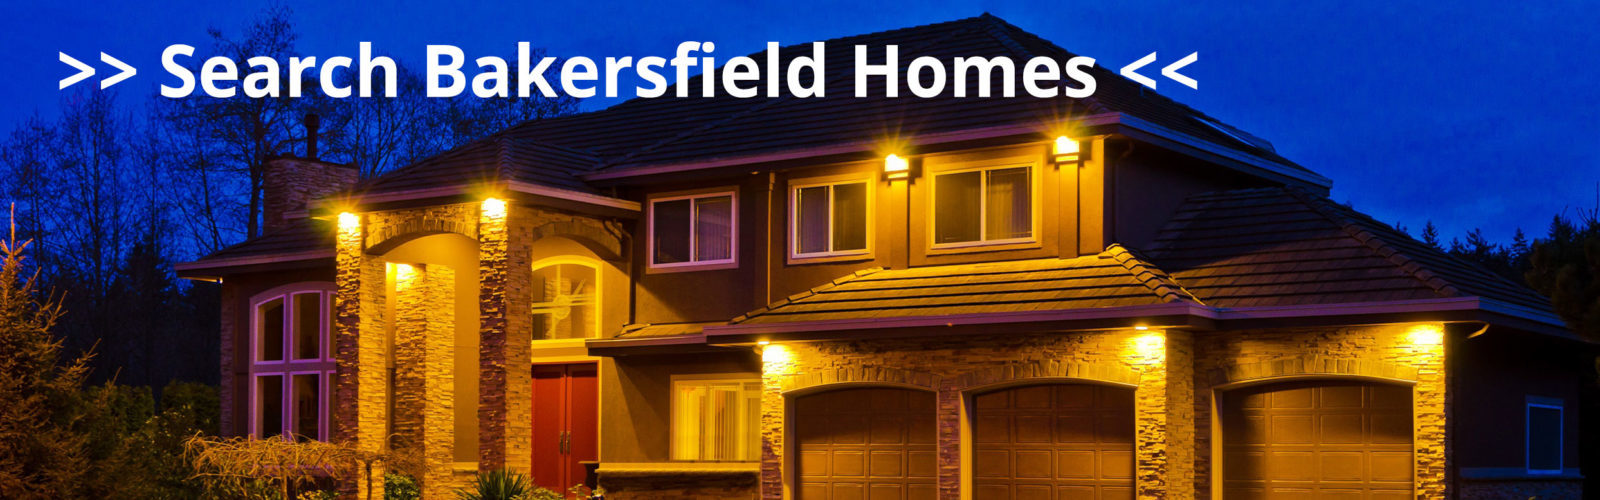 Top realtor bakersfield bakersfield realtors jeff for Bakersfield home builders